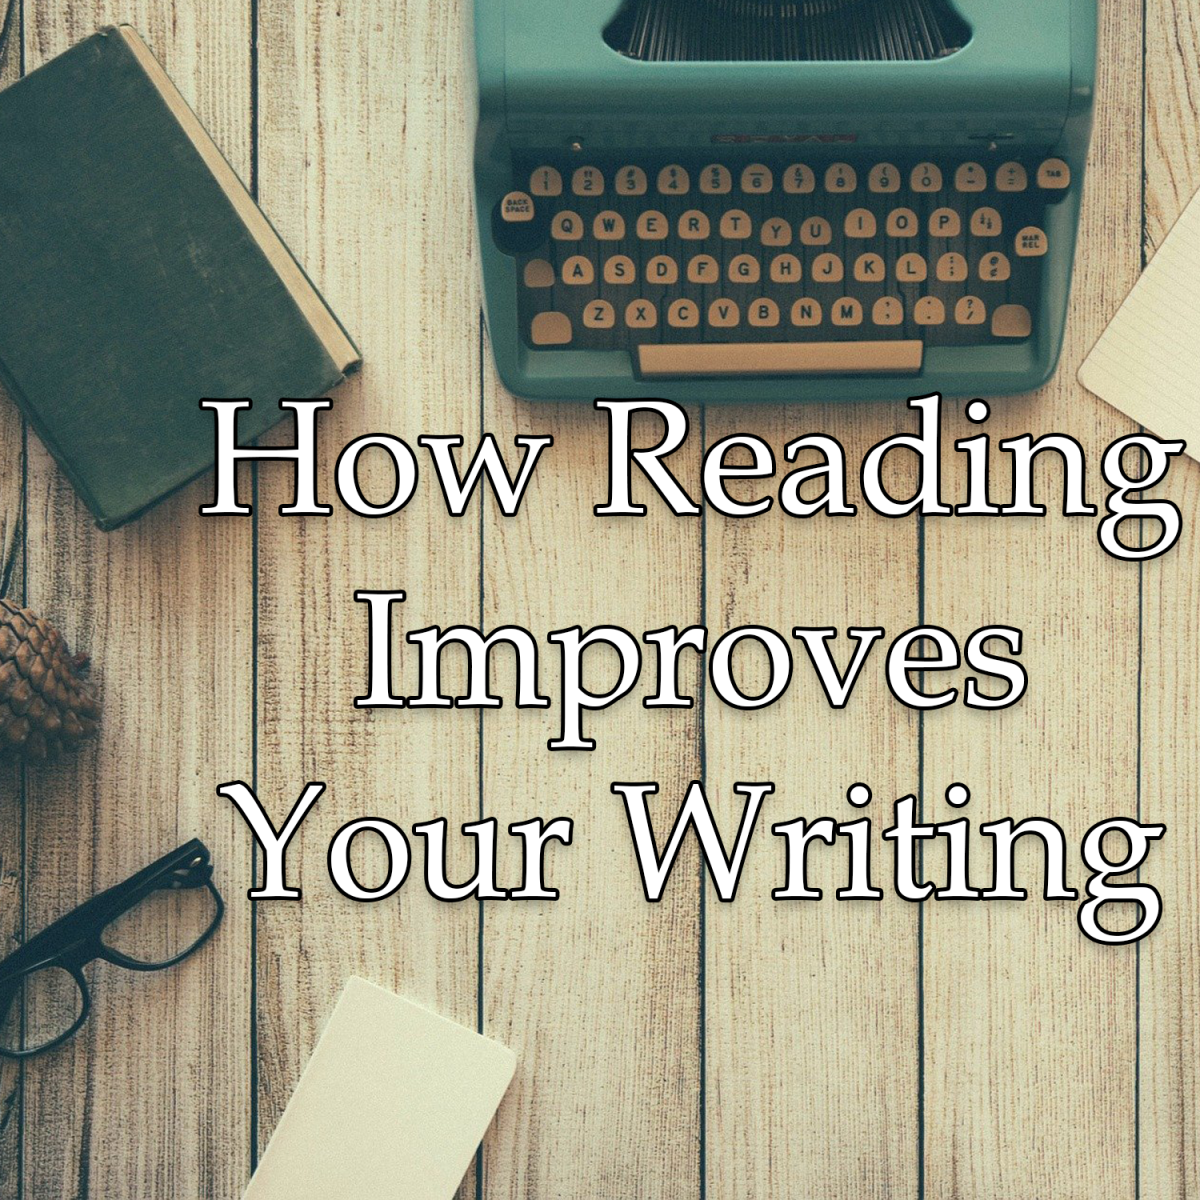 How Reading Improves Your Writing